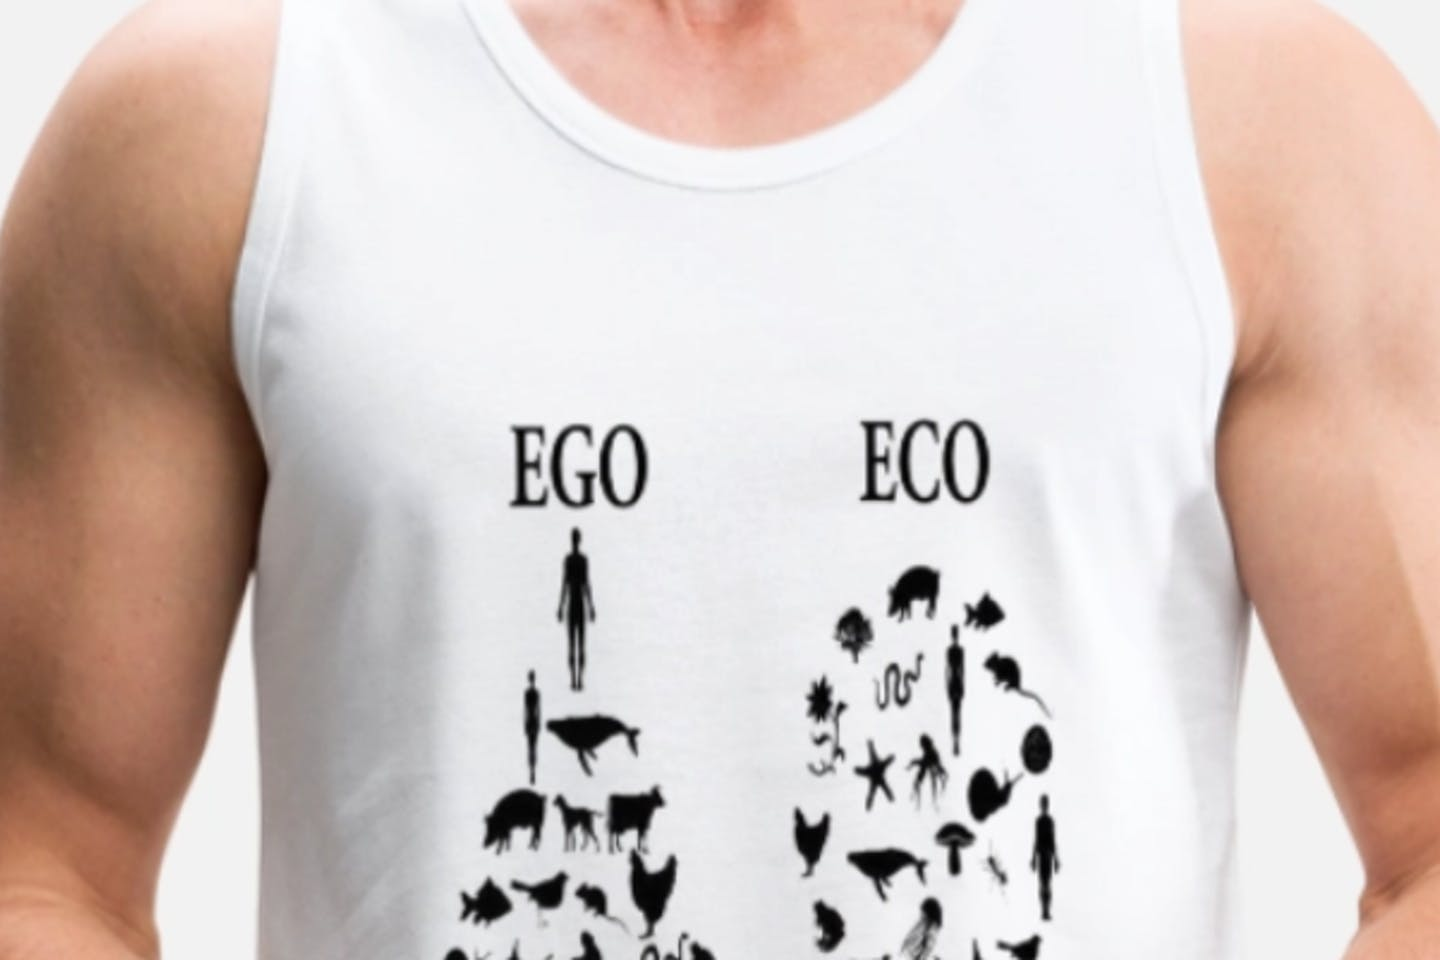 Ego not eco t-shirt